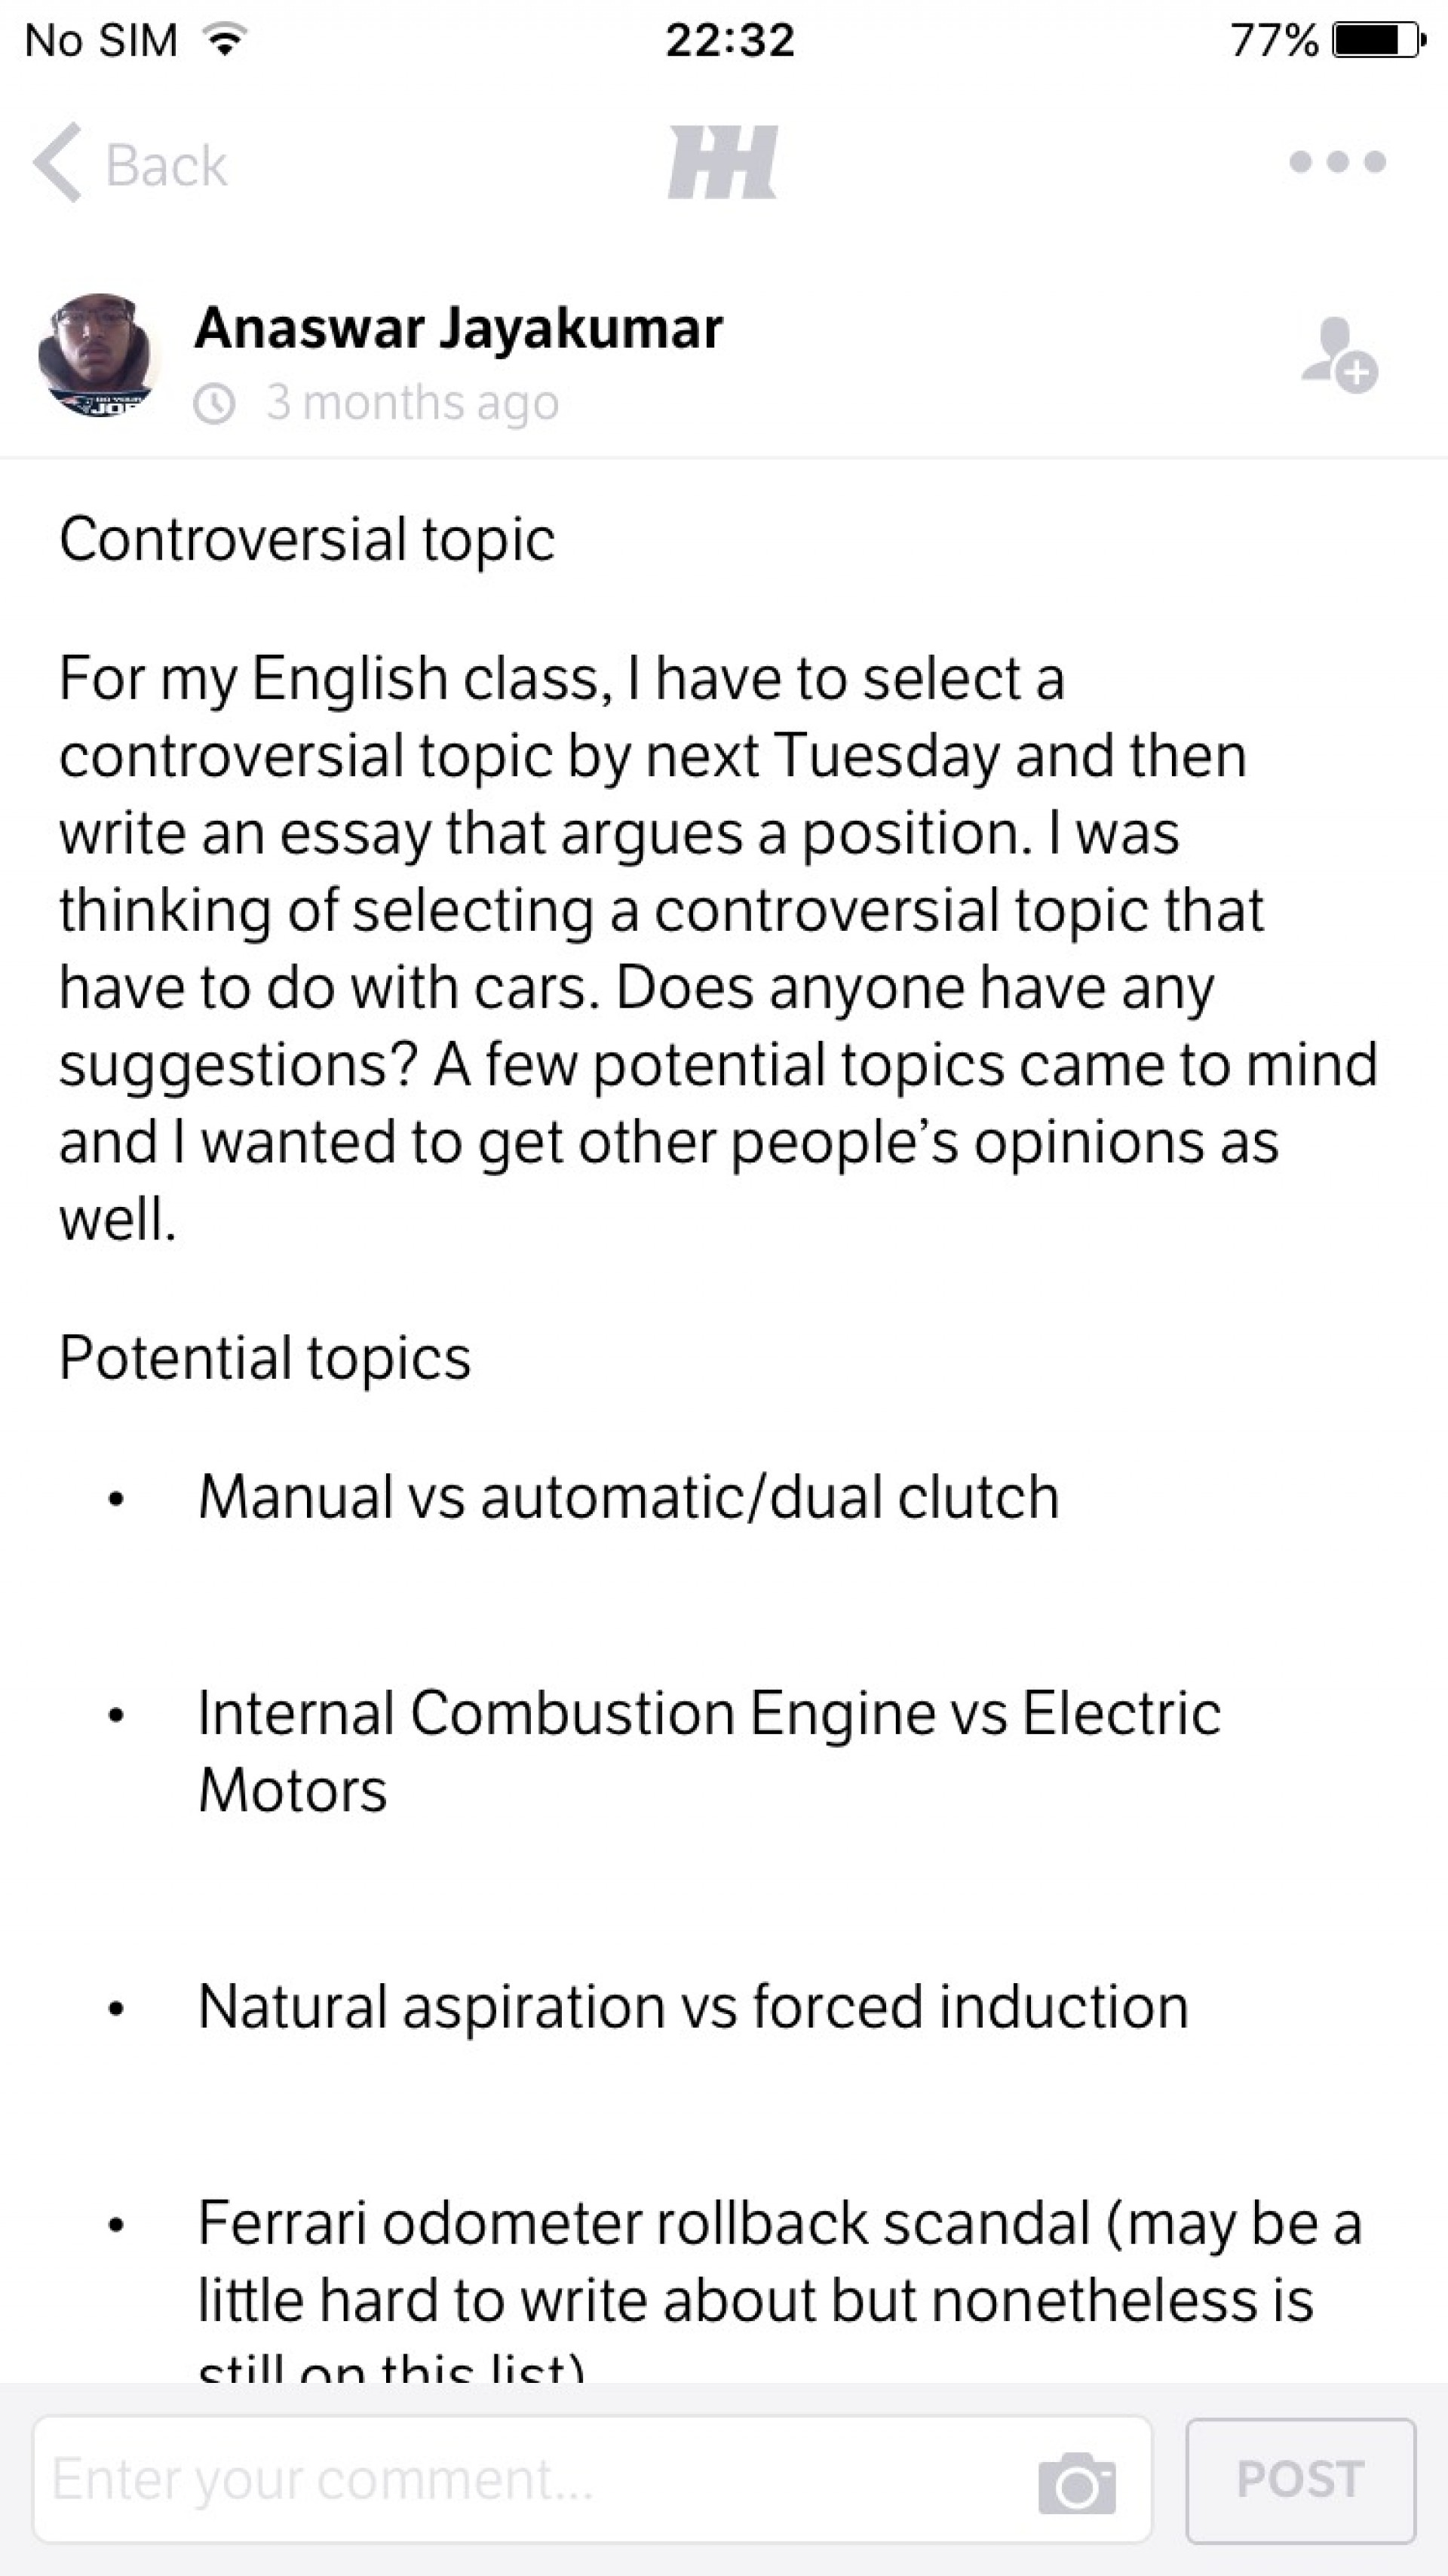 002 Research Paper Controversial Topic Essay Topics Example Outline Issue20 Middle School Phenomenal Questions Science 1920